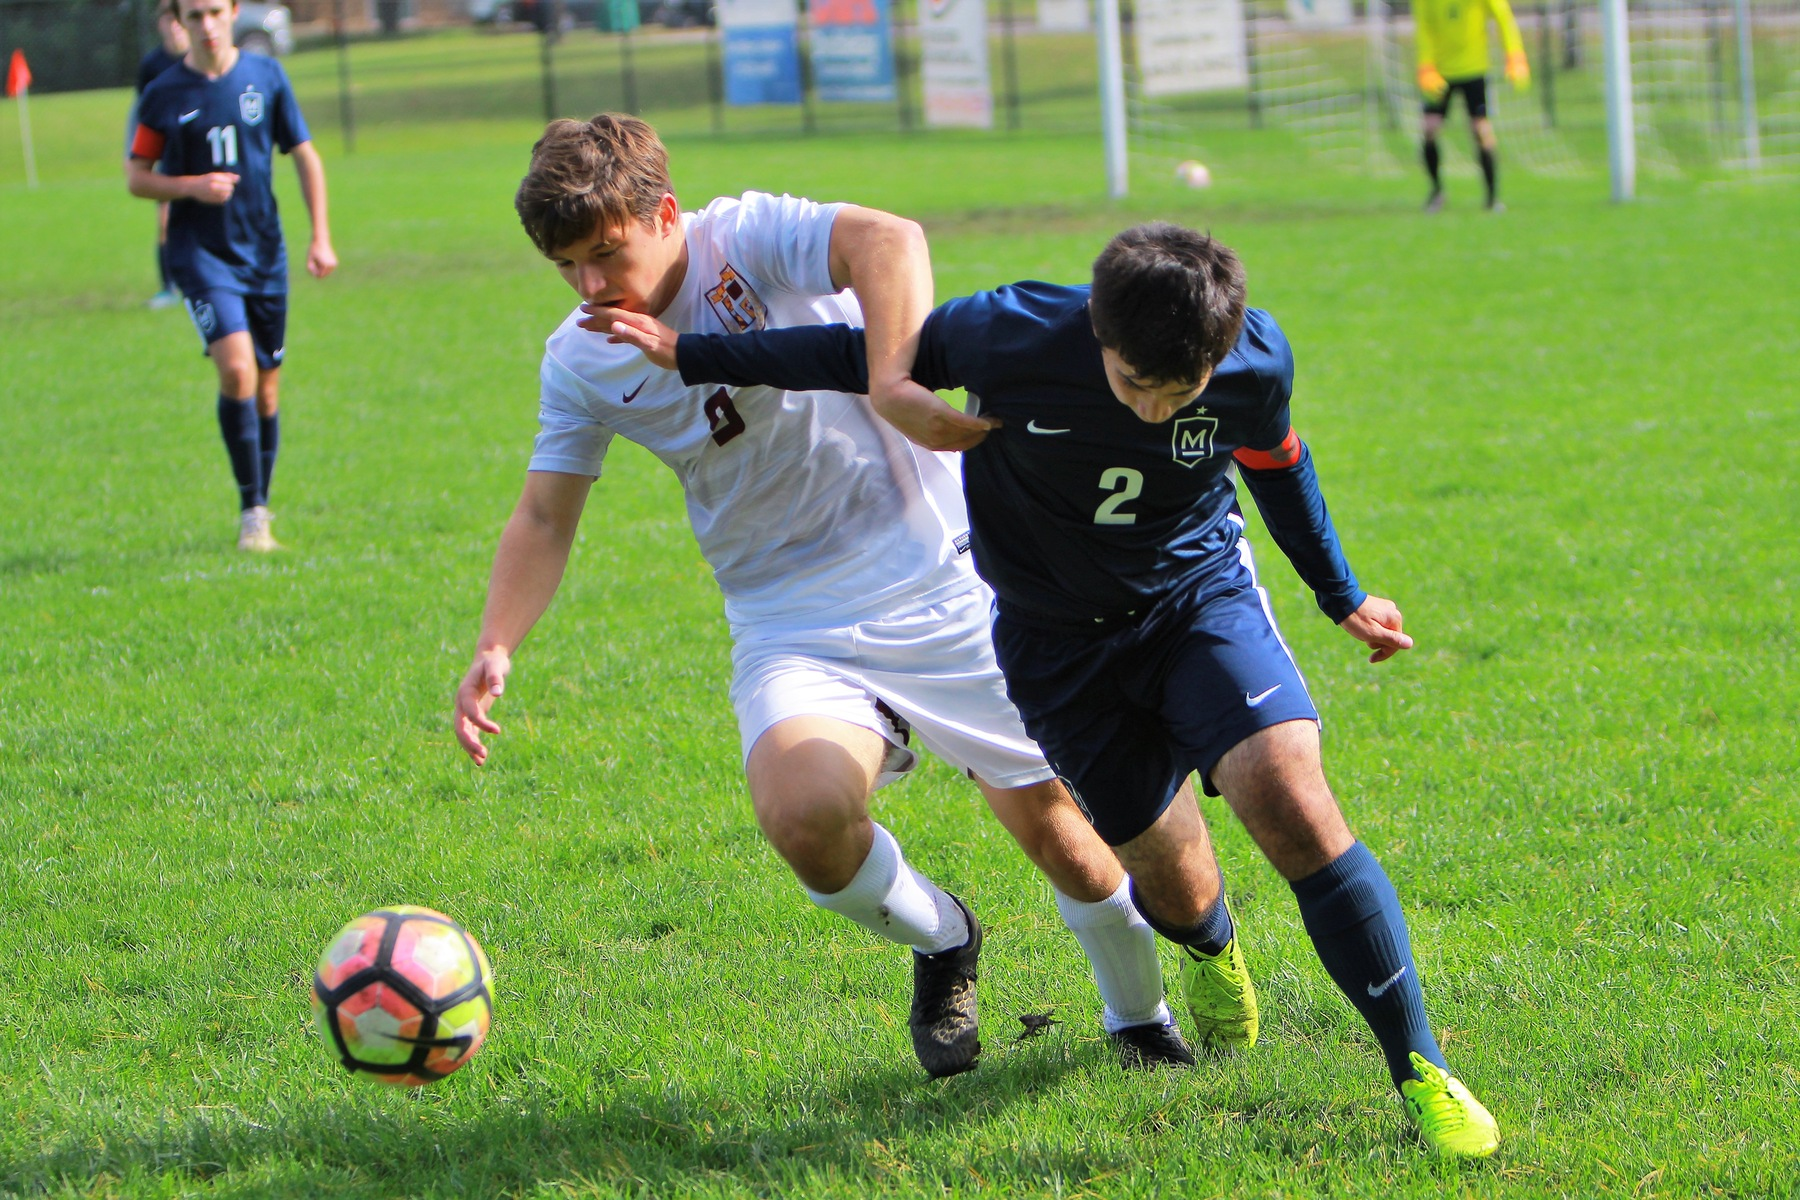 Faith Eagles defender Noah Zollinger battles a Maranatha player for the ball. The Eagles fell to the Sabercats, 3-0, to end the season.